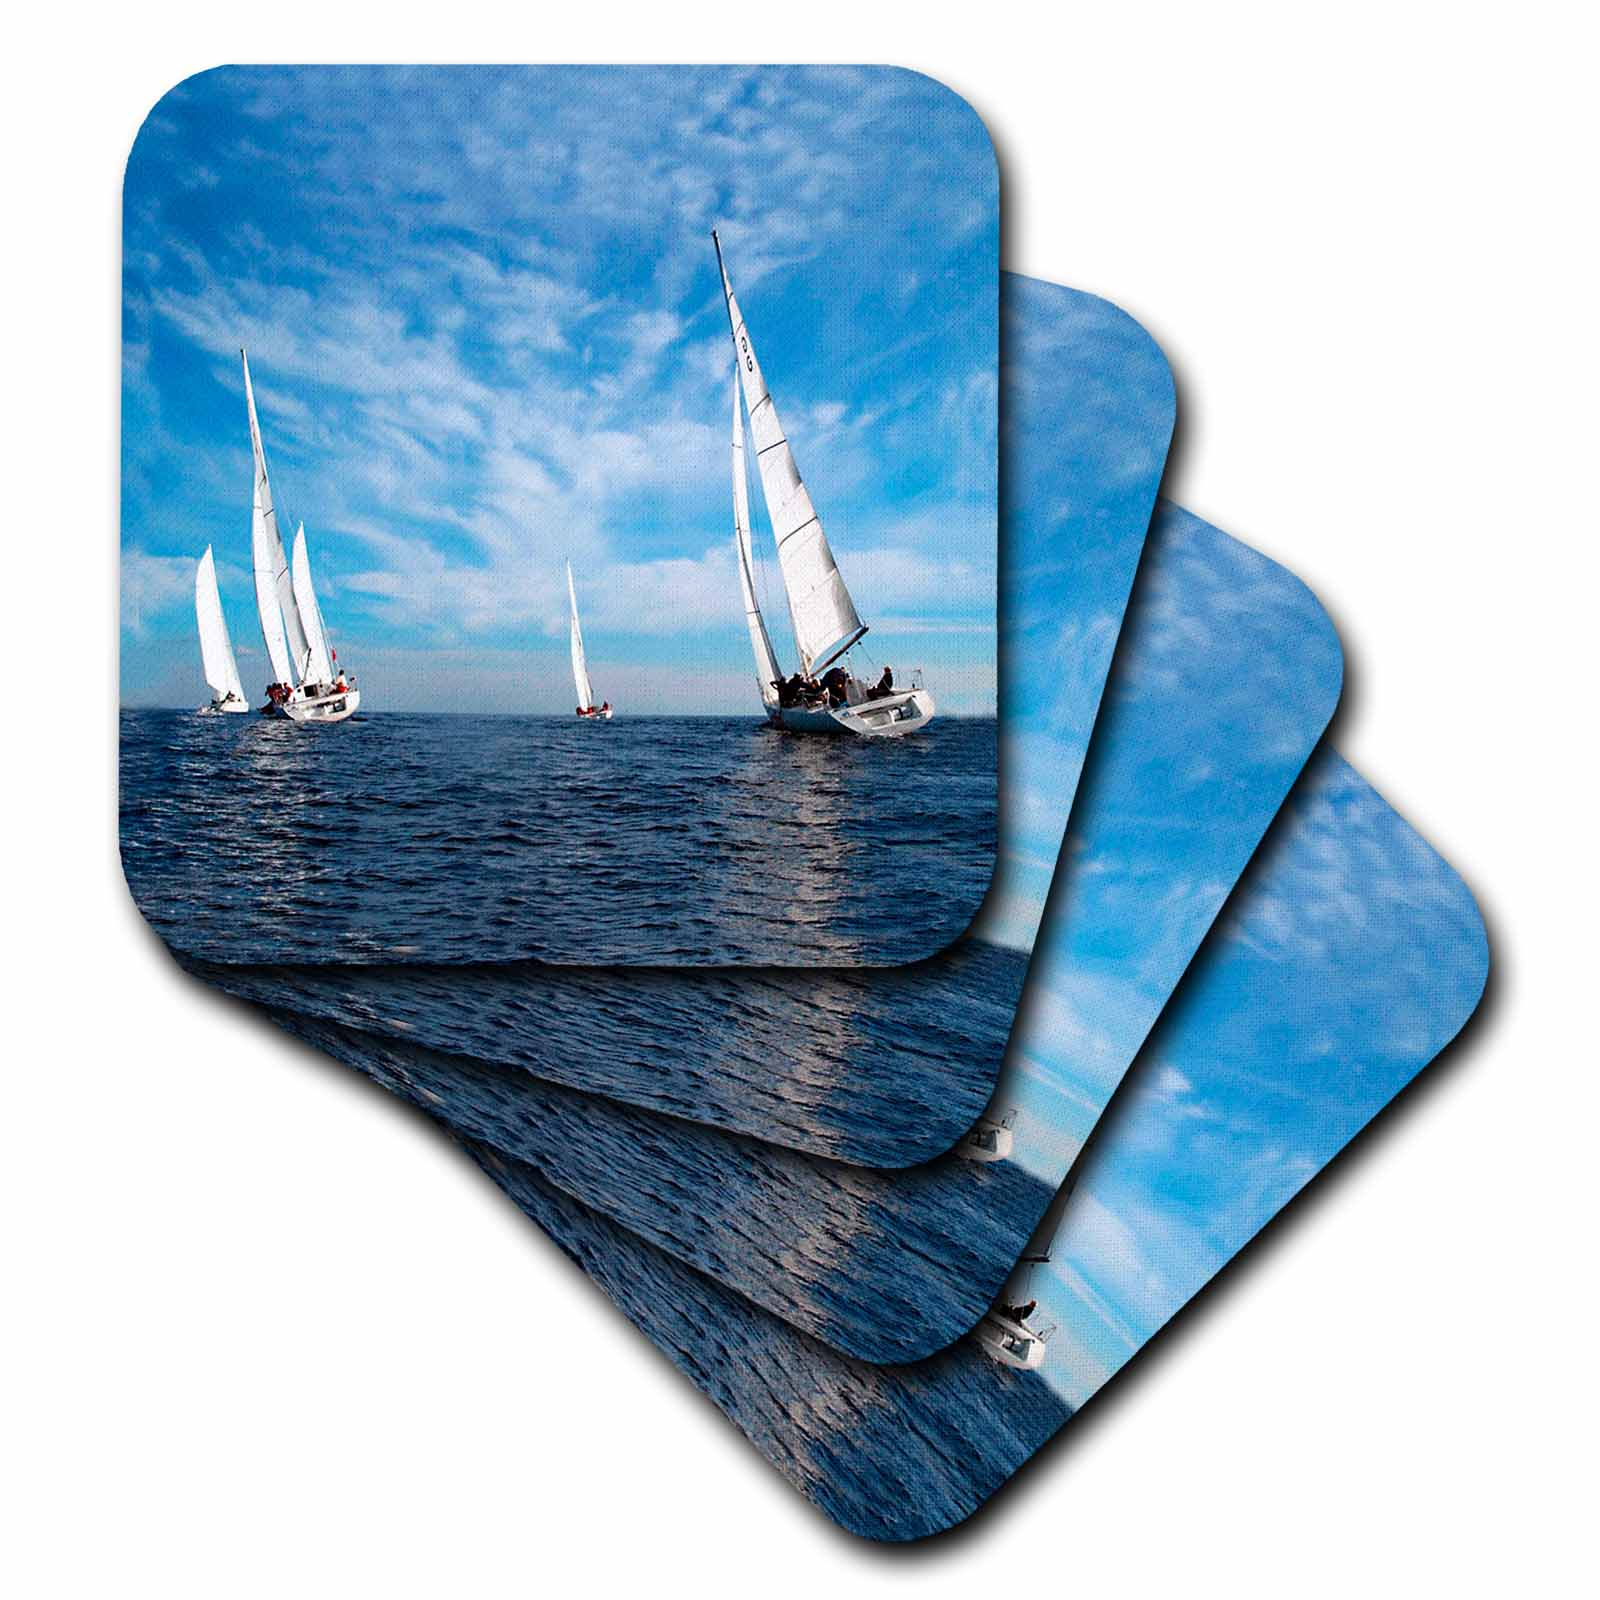 3dRose Sail Boats, Ceramic Tile Coasters, set of 4